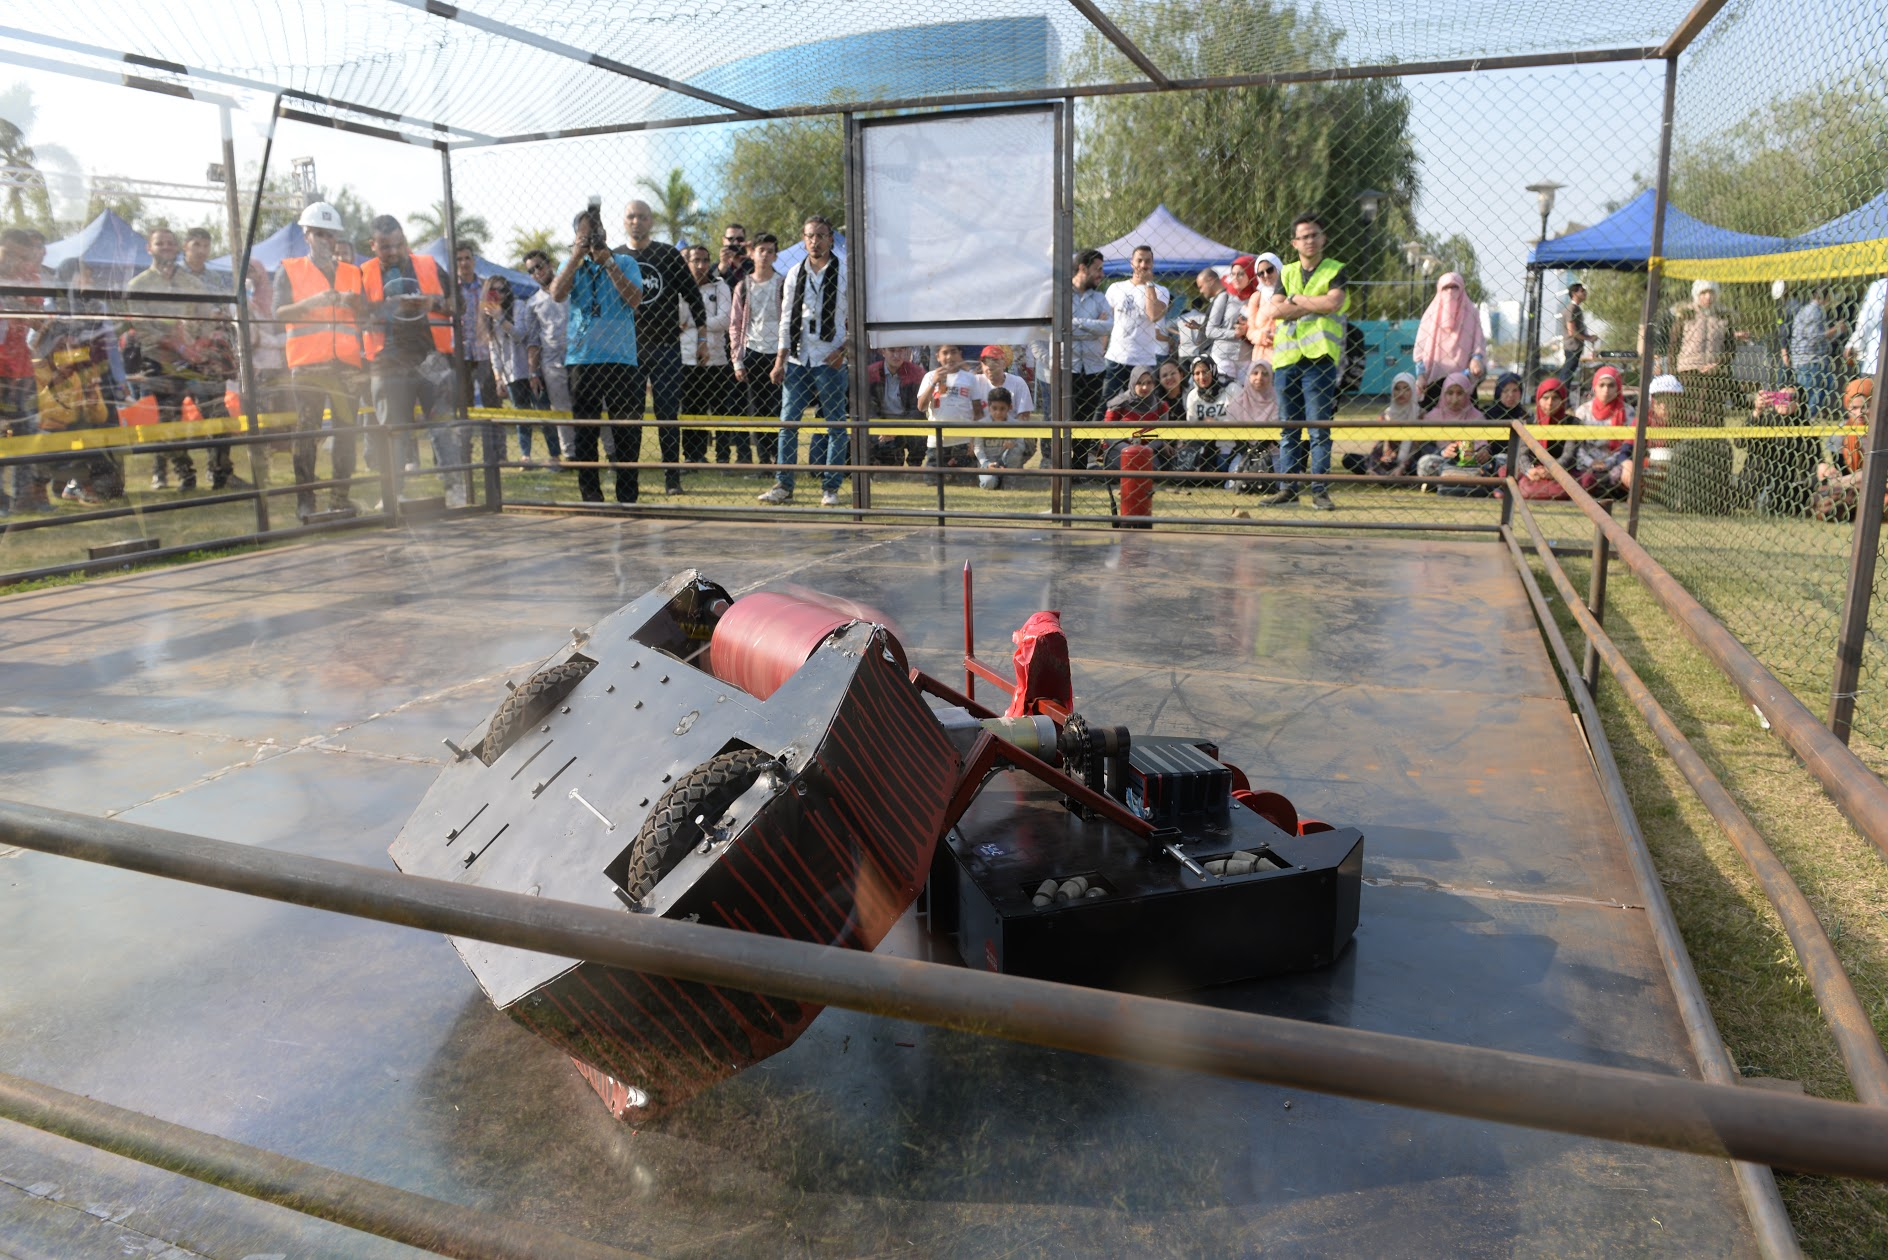 Maker Faire Cairo Brings History, Youth, and Battling Bots